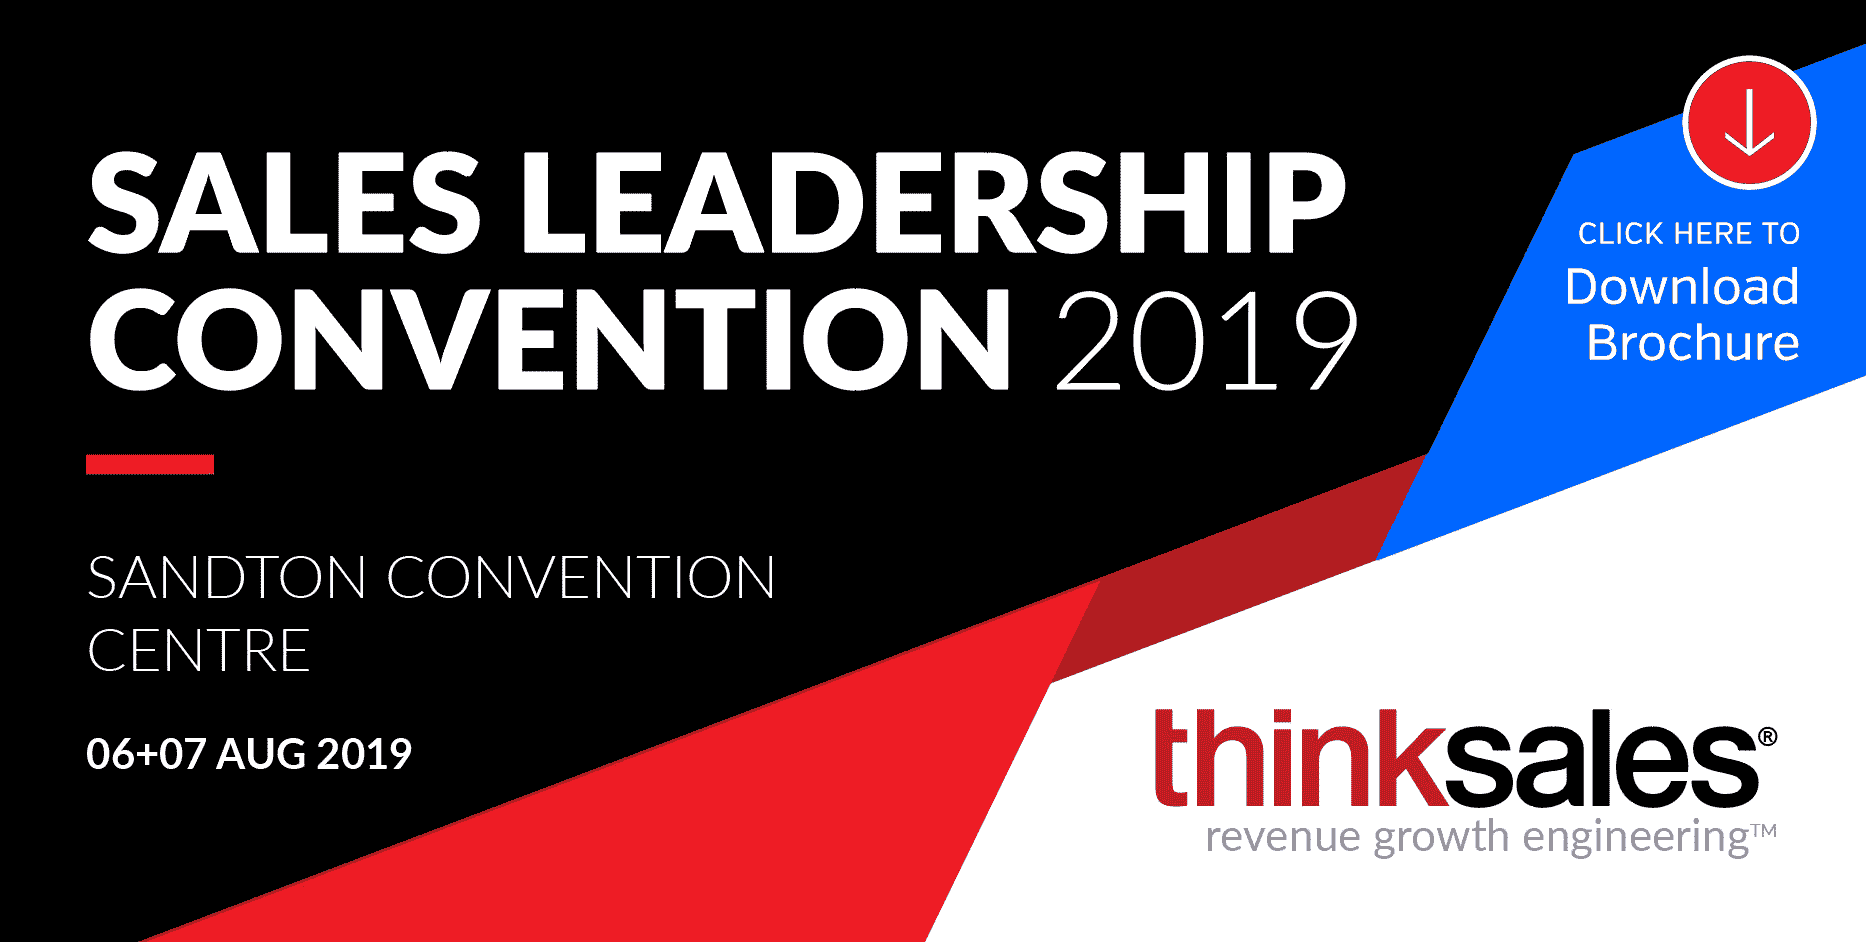 ThinkSales Convention 2019 – 10th Annual Sales Leadership